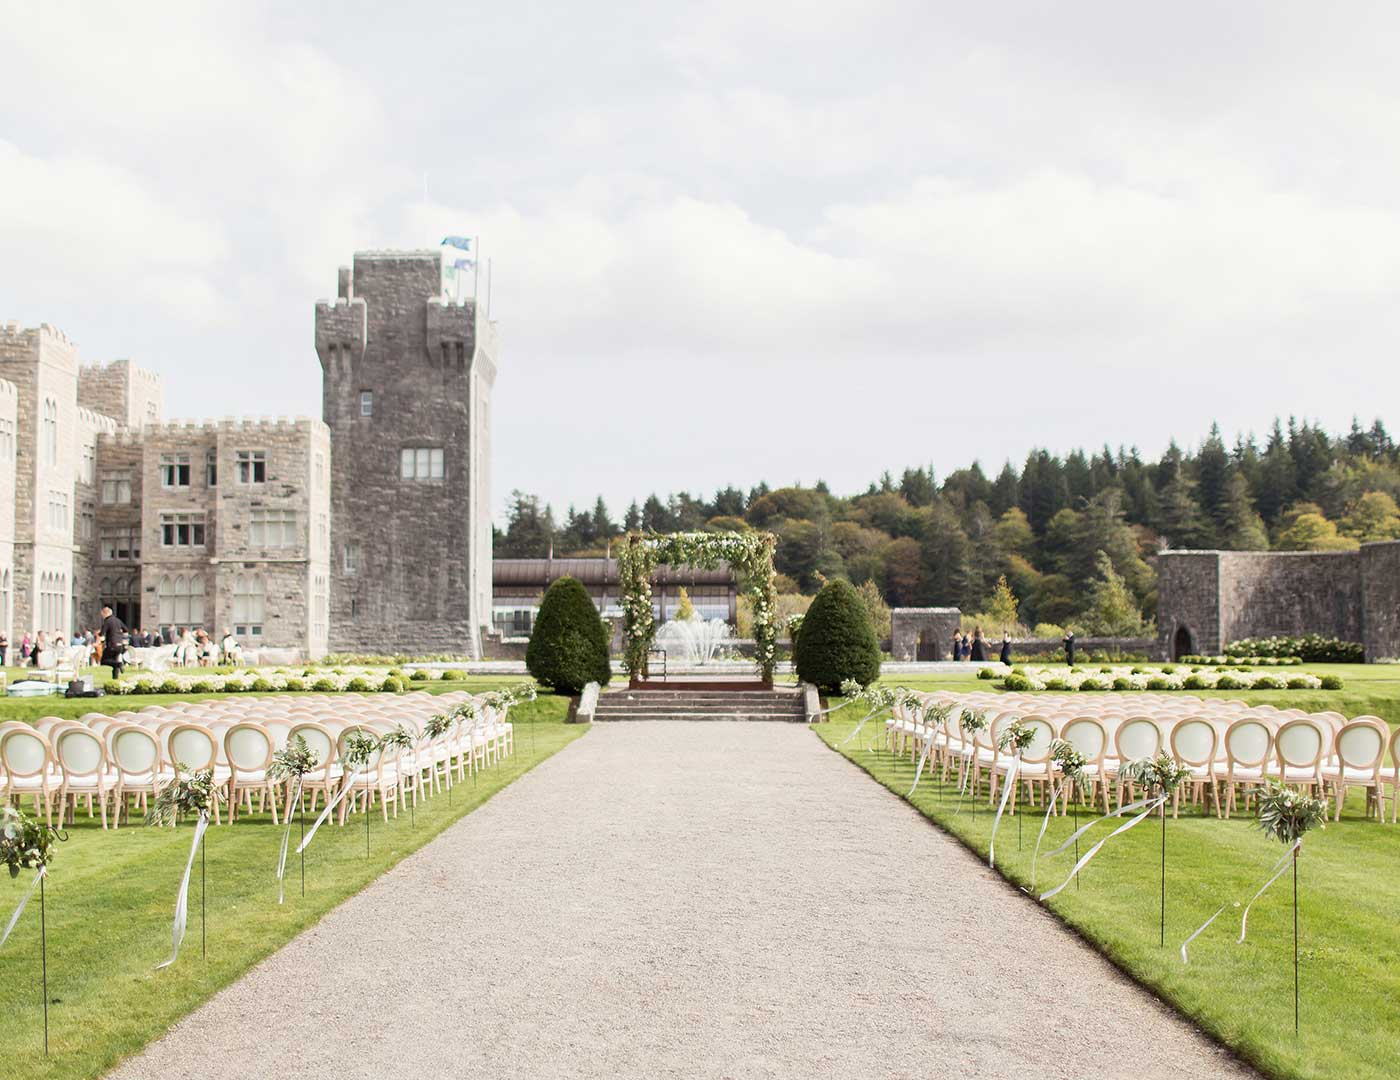 Outdoor Wedding ceremony, Ashford Castle, Wedding ceremony, Marquee ceremony, Event planner in Ireland, Wedding Planner in Ireland, Destination Weddings, Olivia Buckley International